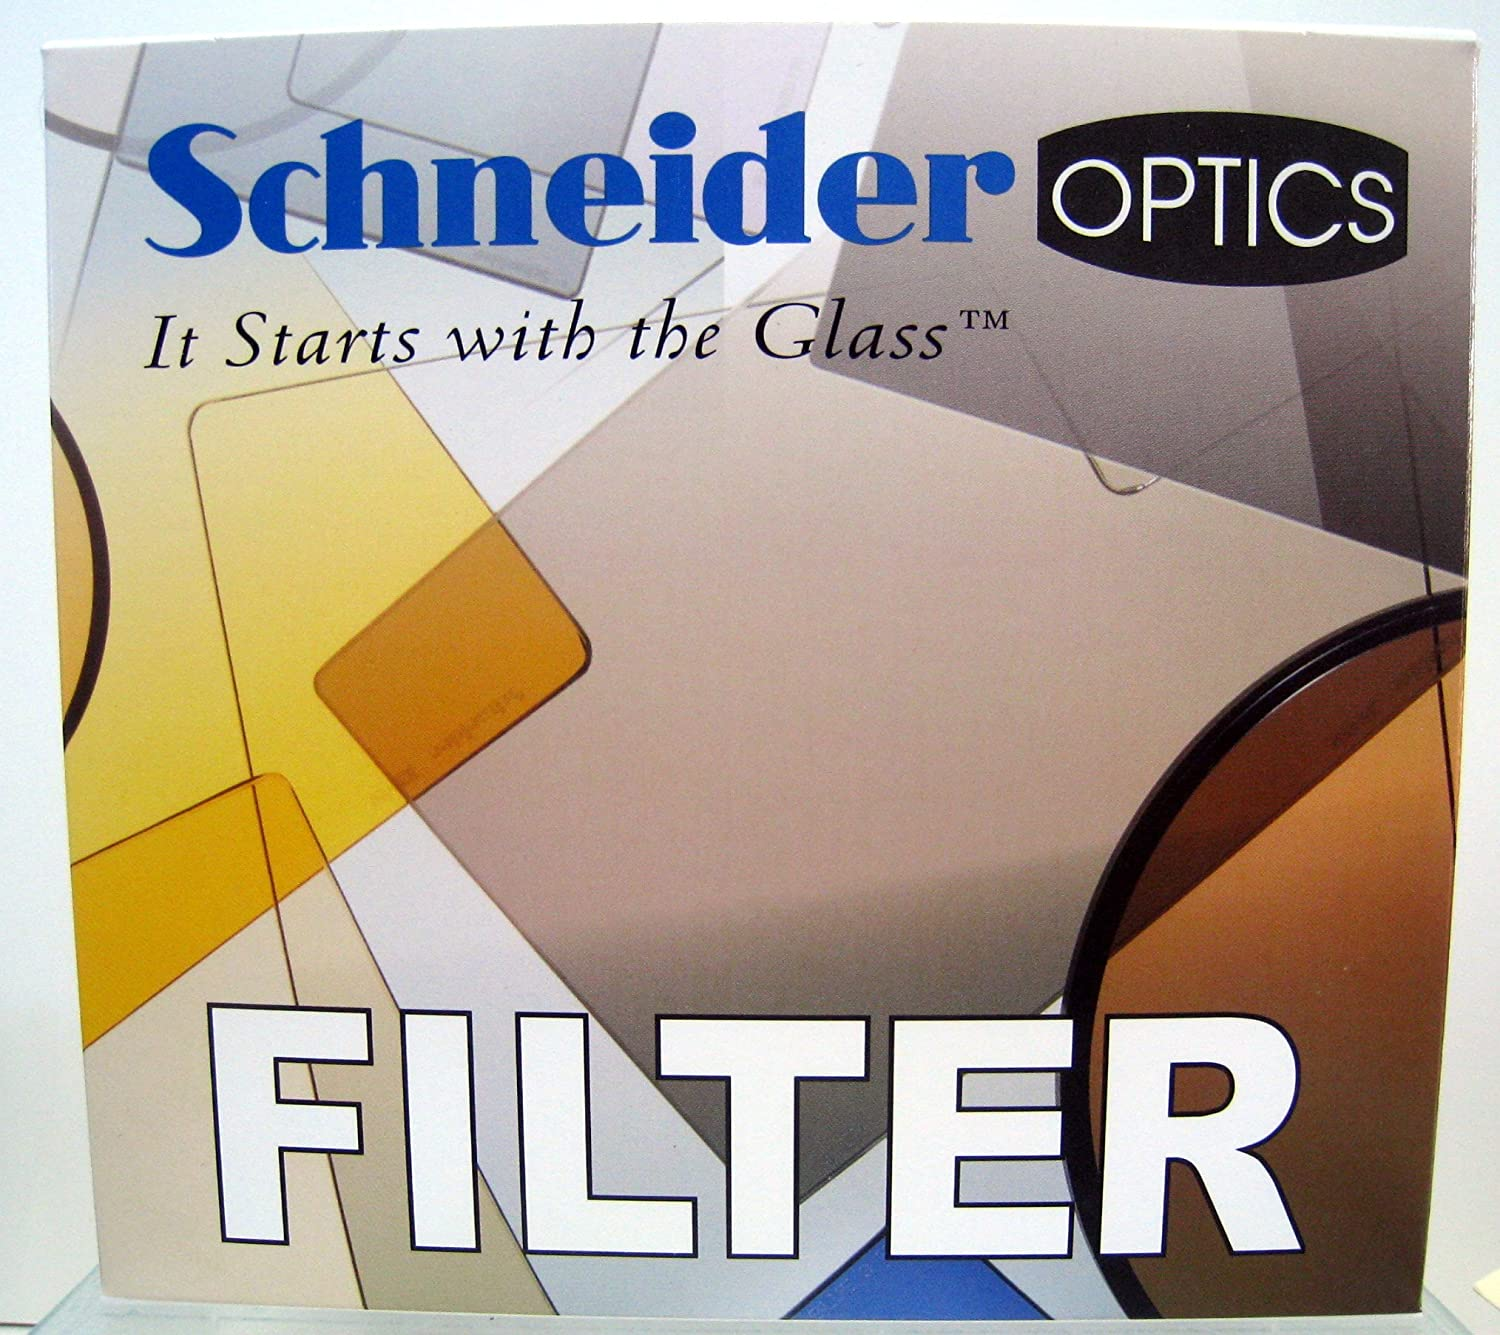 Schneider 138mm Black Frost 2 Round Glass Filter